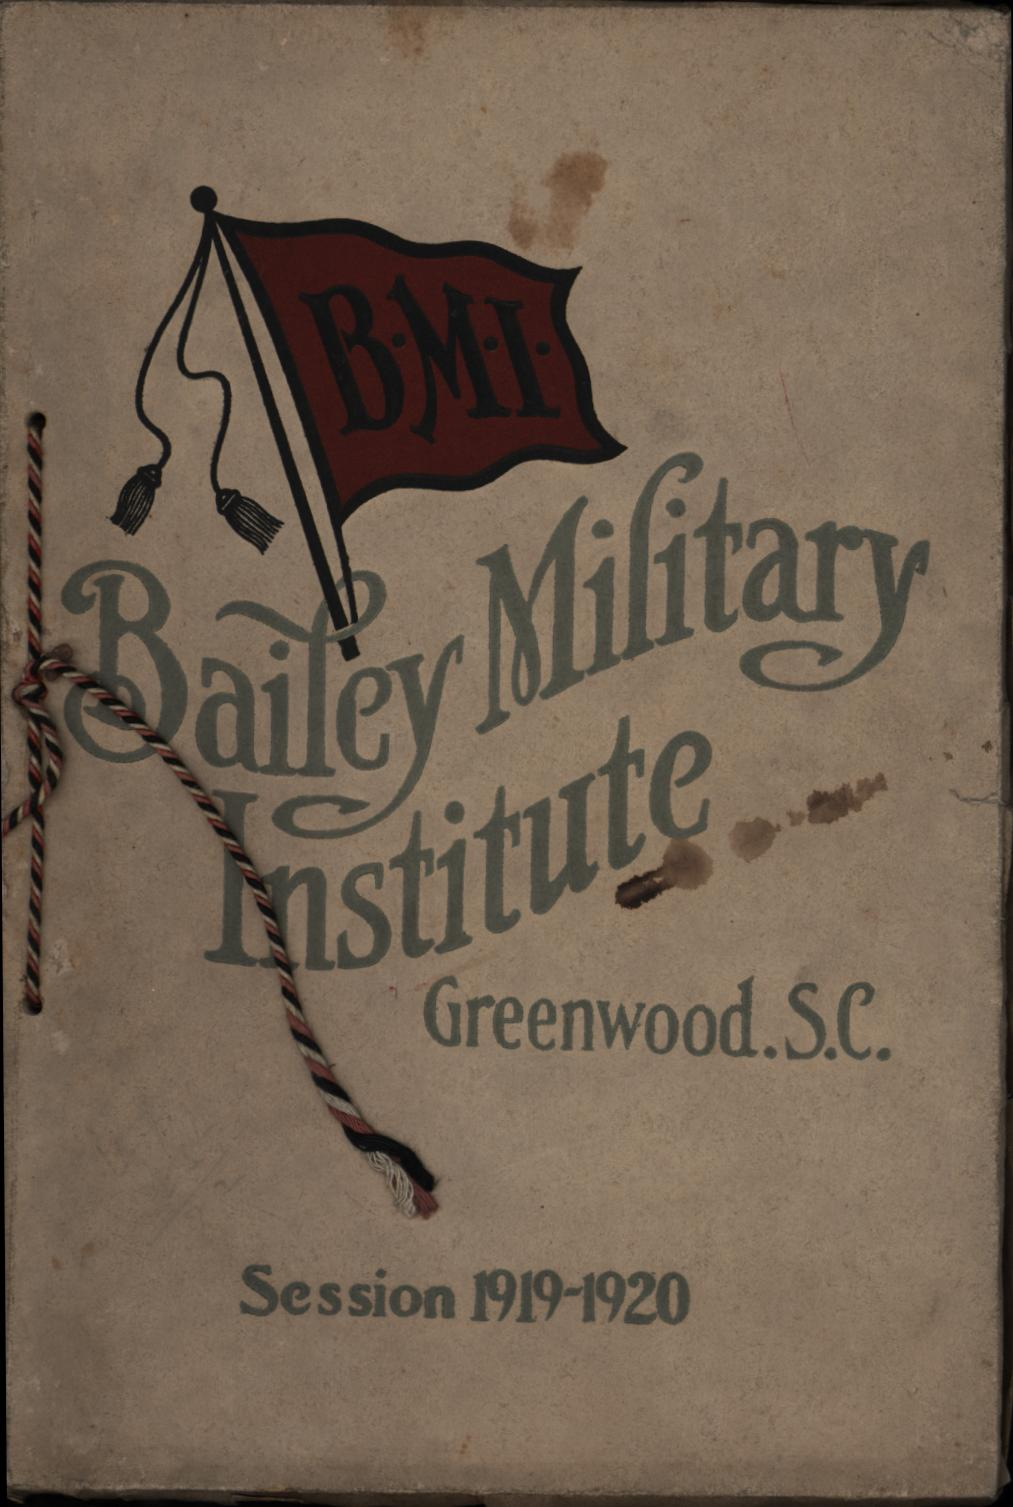 Image for Bailey Military Institute, Greenwood, South Carolina: Session 1919-1920 (First Edition)